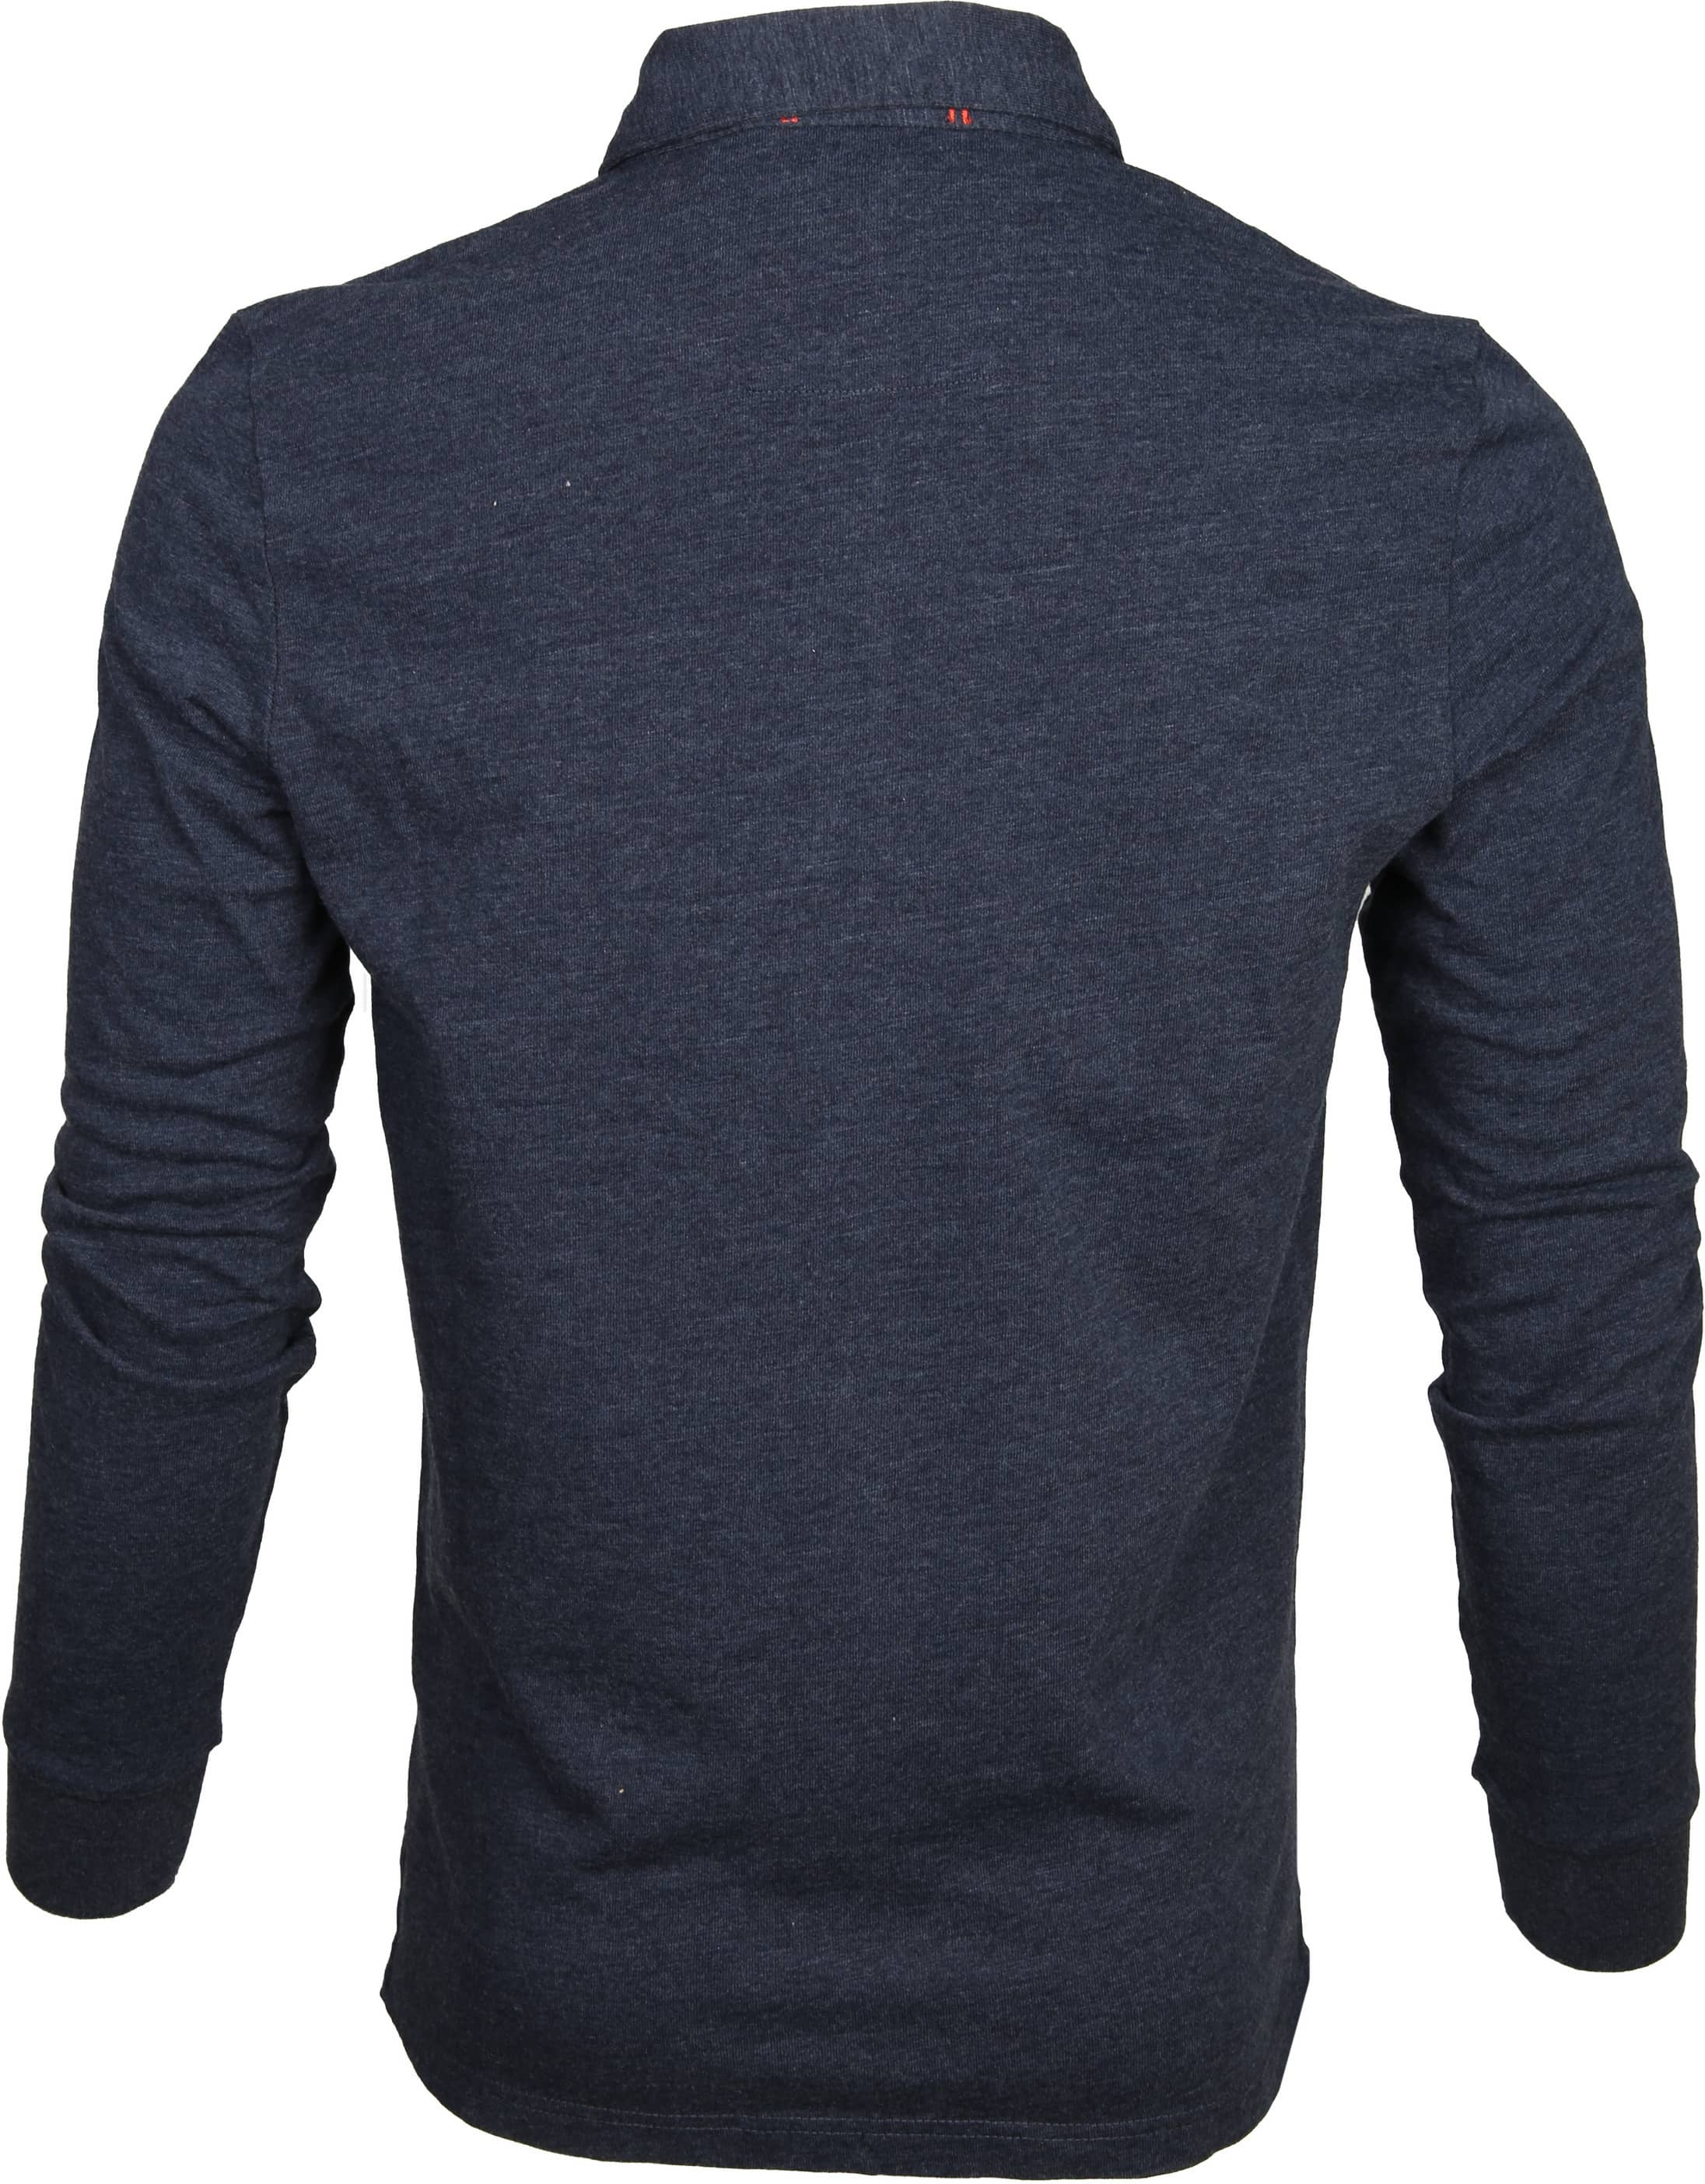 NZA Polo LS Marchant Navy foto 3